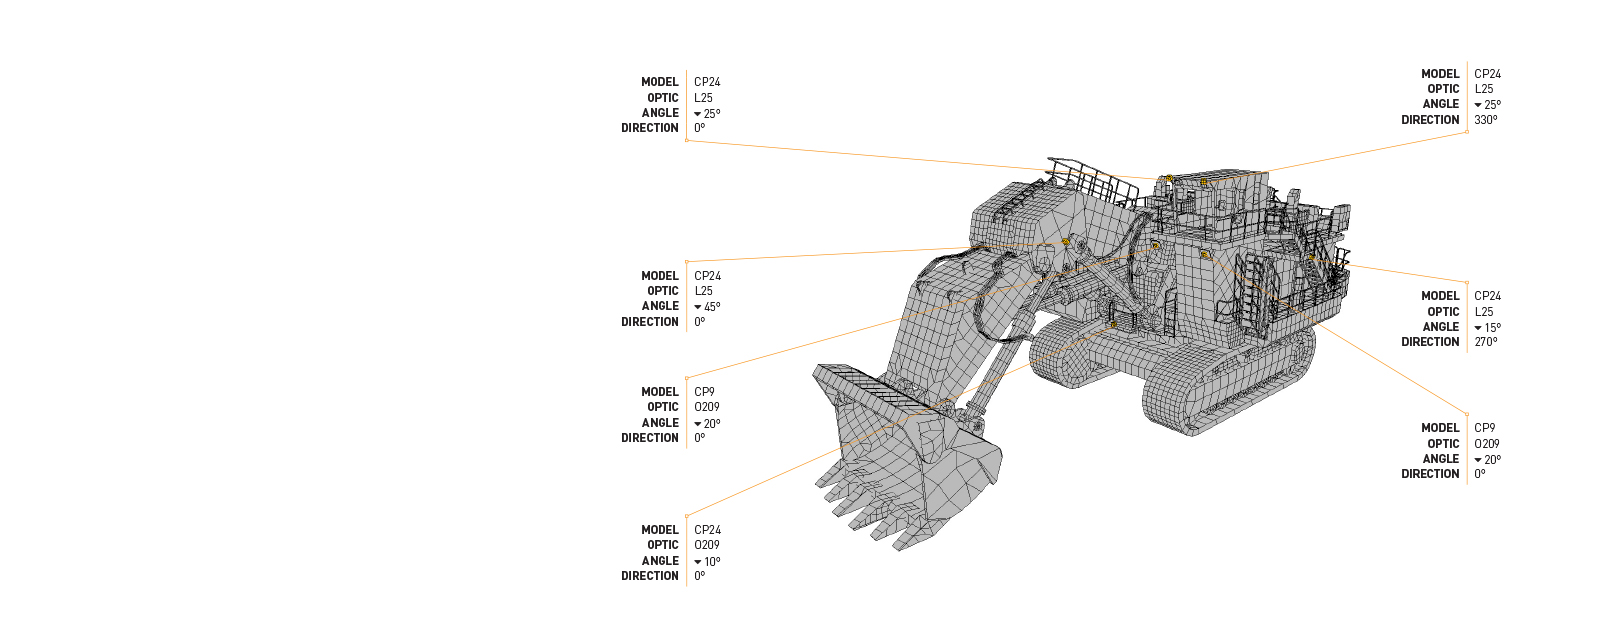 This Lighting Design Simulation Report highlights how the light output of a Hitachi EX8000 hydraulic mining excavator can be drastically improved with a CP24 LED Floodlight.